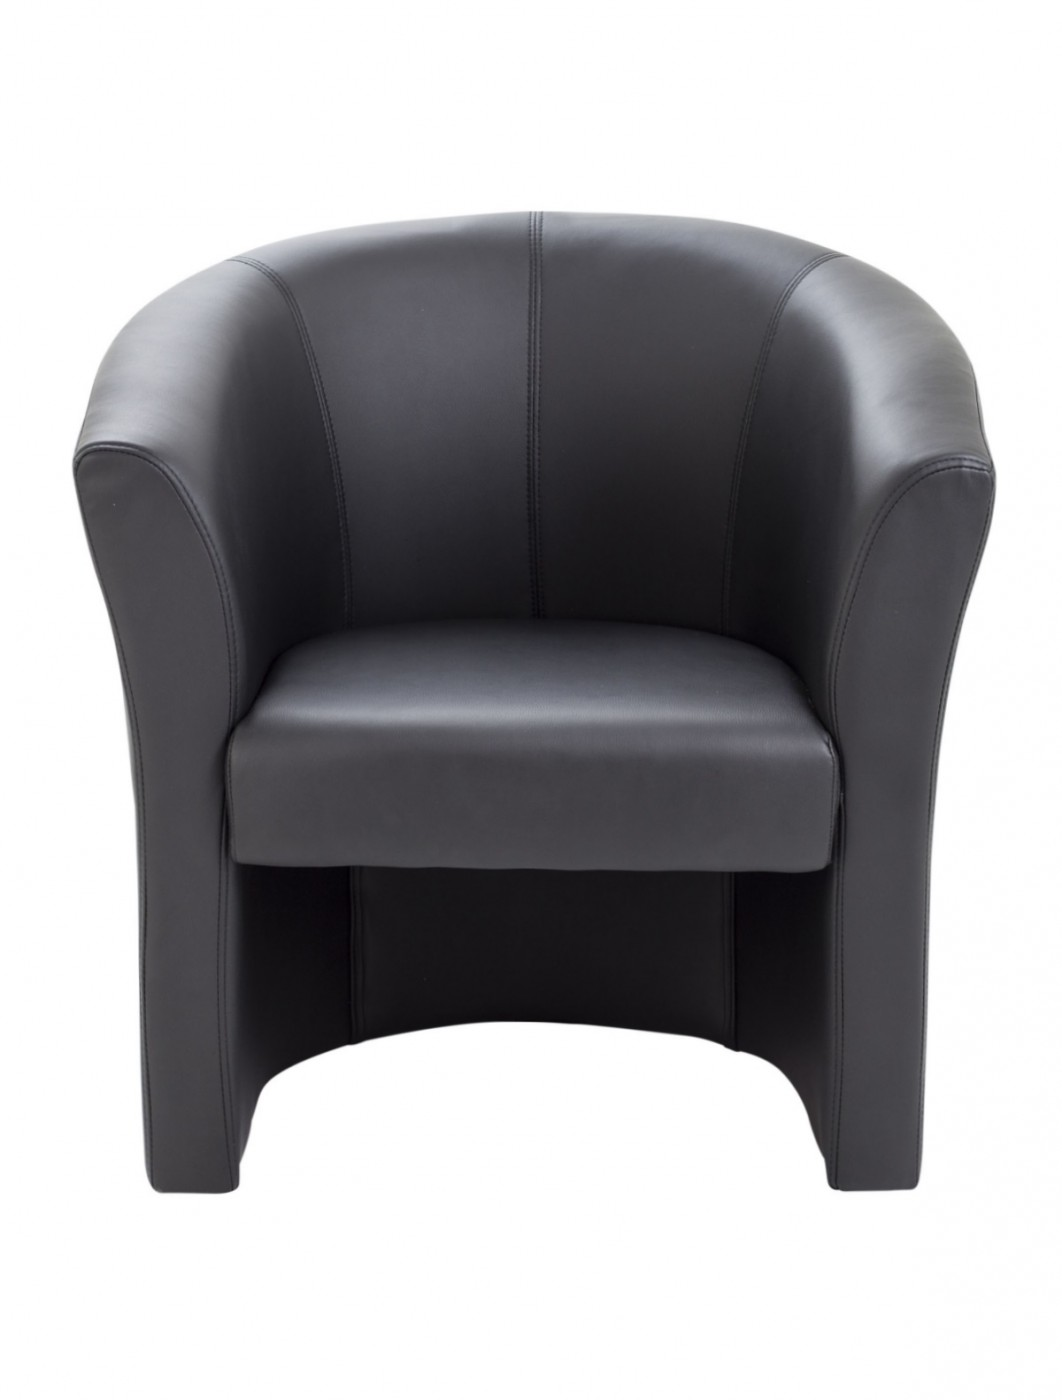 Tub Chairs Tub Chairs Tc Leather Look Reception Armchair Of0201